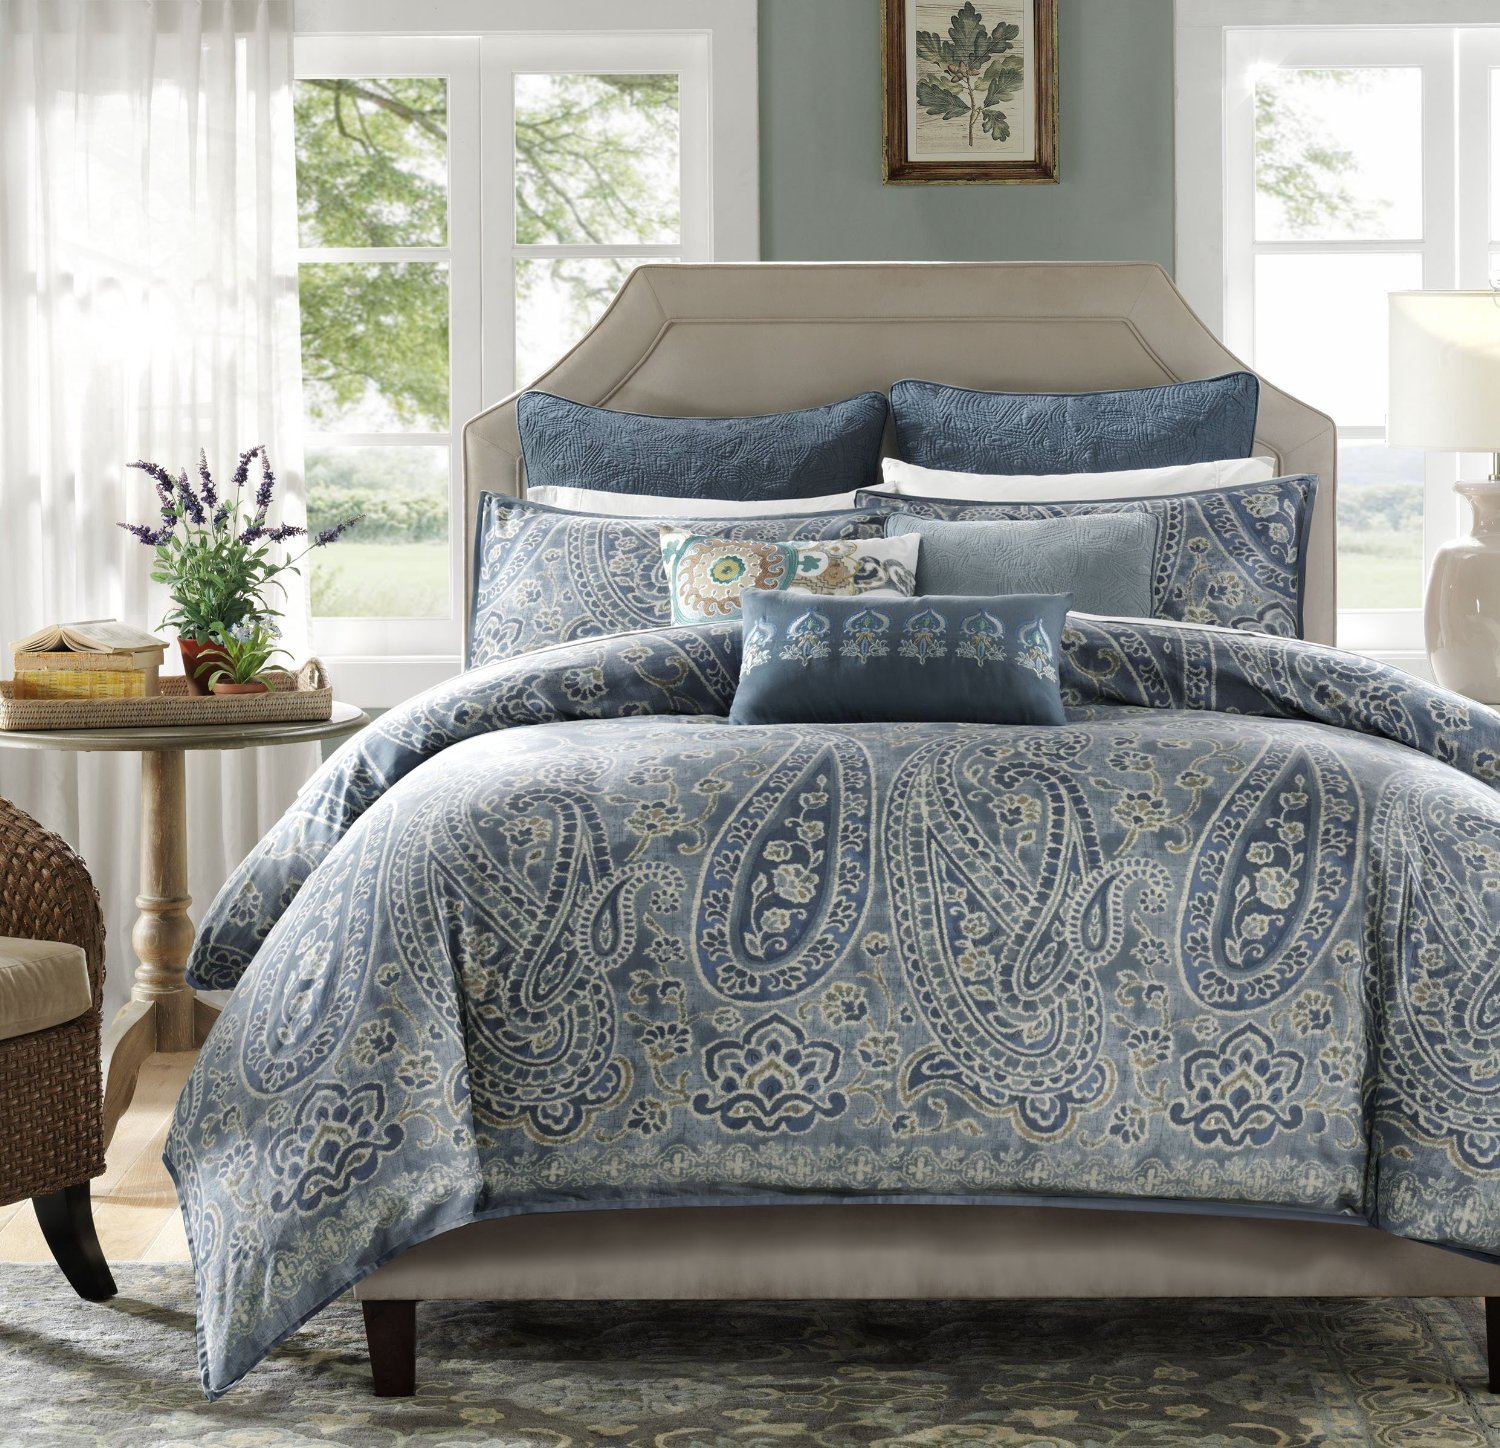 Duvet Comforter | Queen Duvet Covers | Lilly Pulitzer Duvet Cover Queen